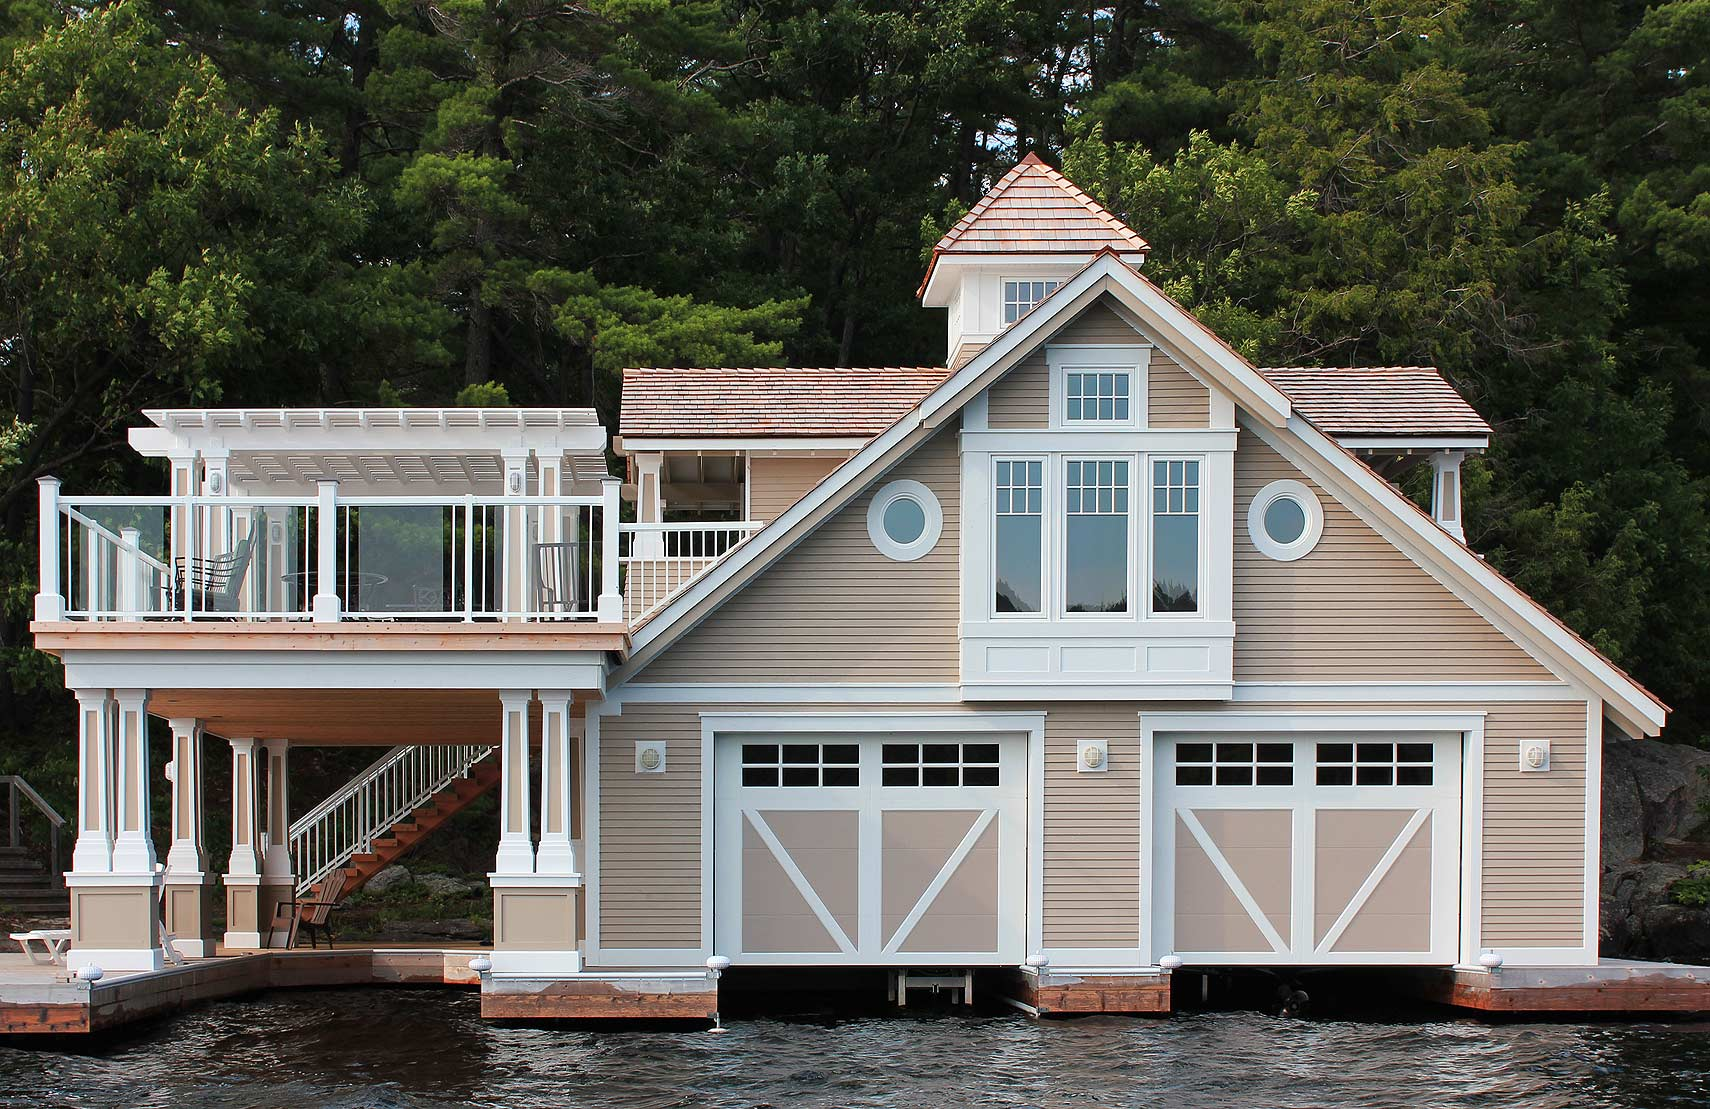 Ontario Cottage and Vacation Home Lake Muskoka Boathouse